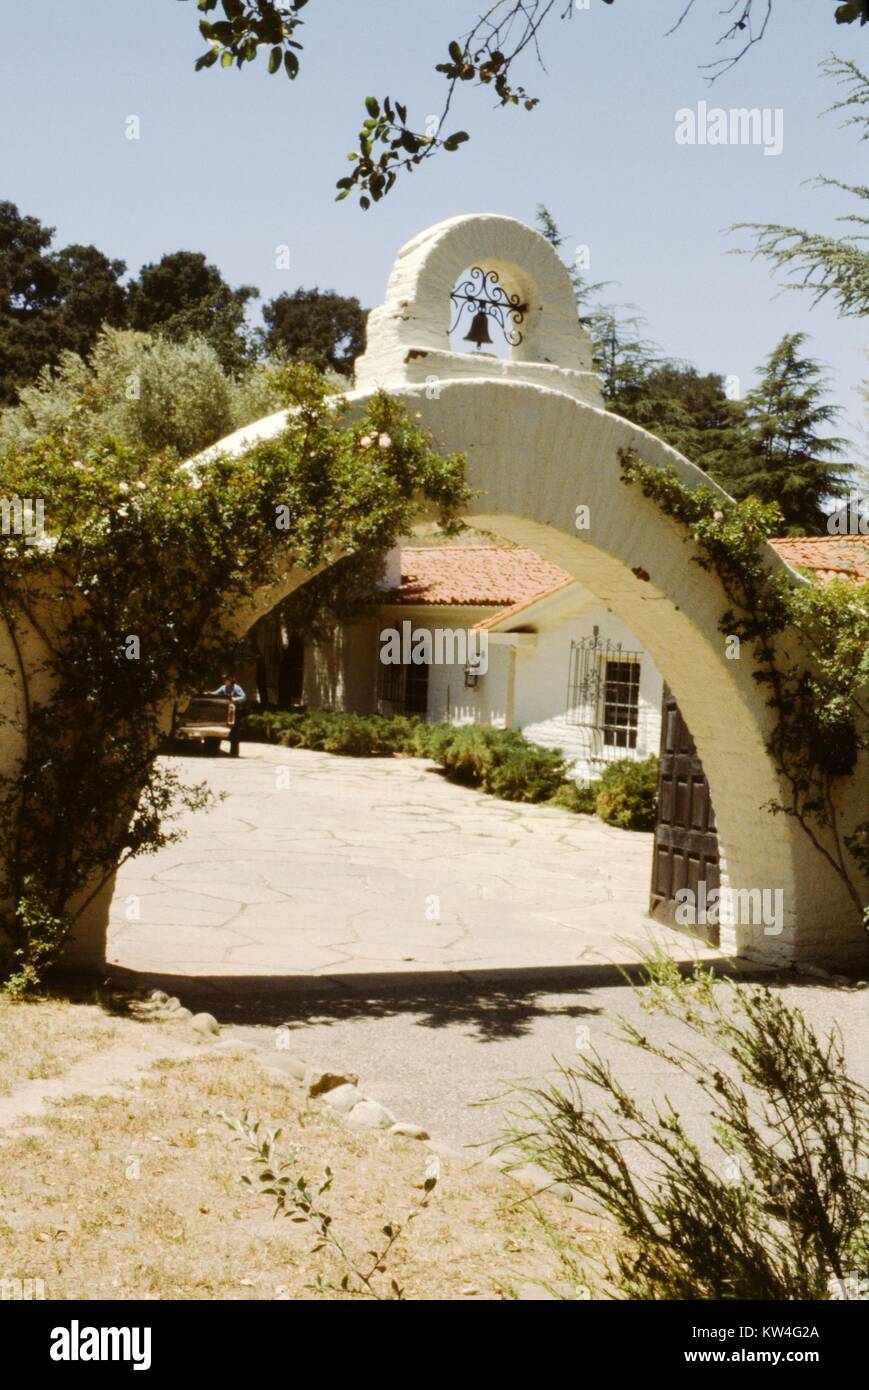 Spanish Colonial Revival Style Arch And Architecture California